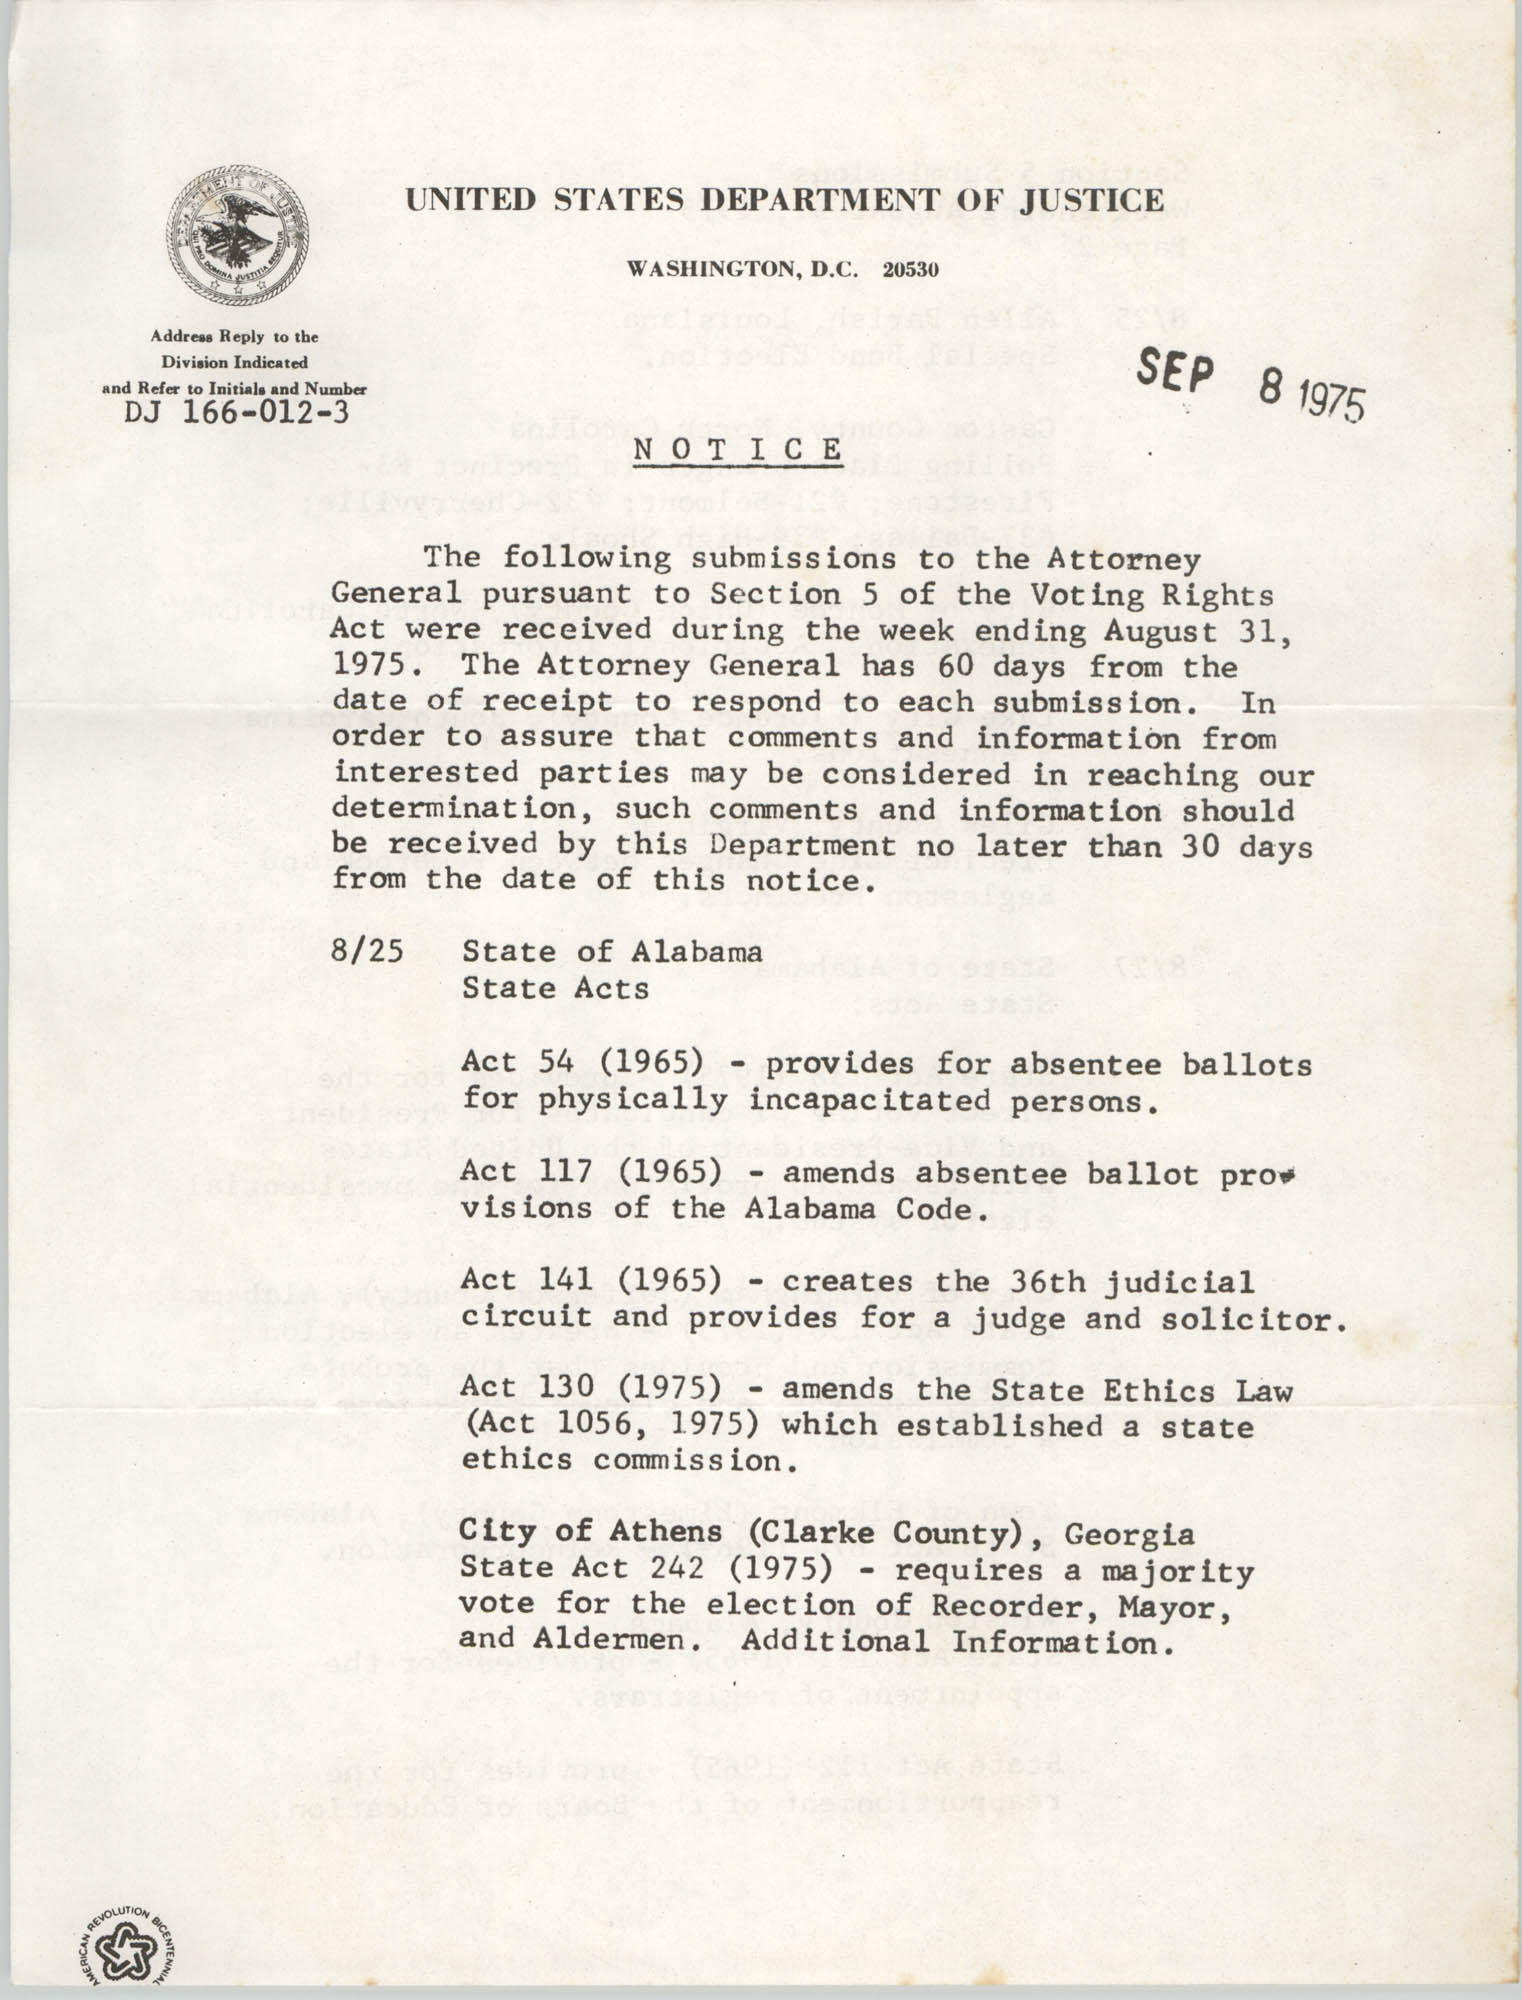 United States Department of Justice Notice, September 8, 1975